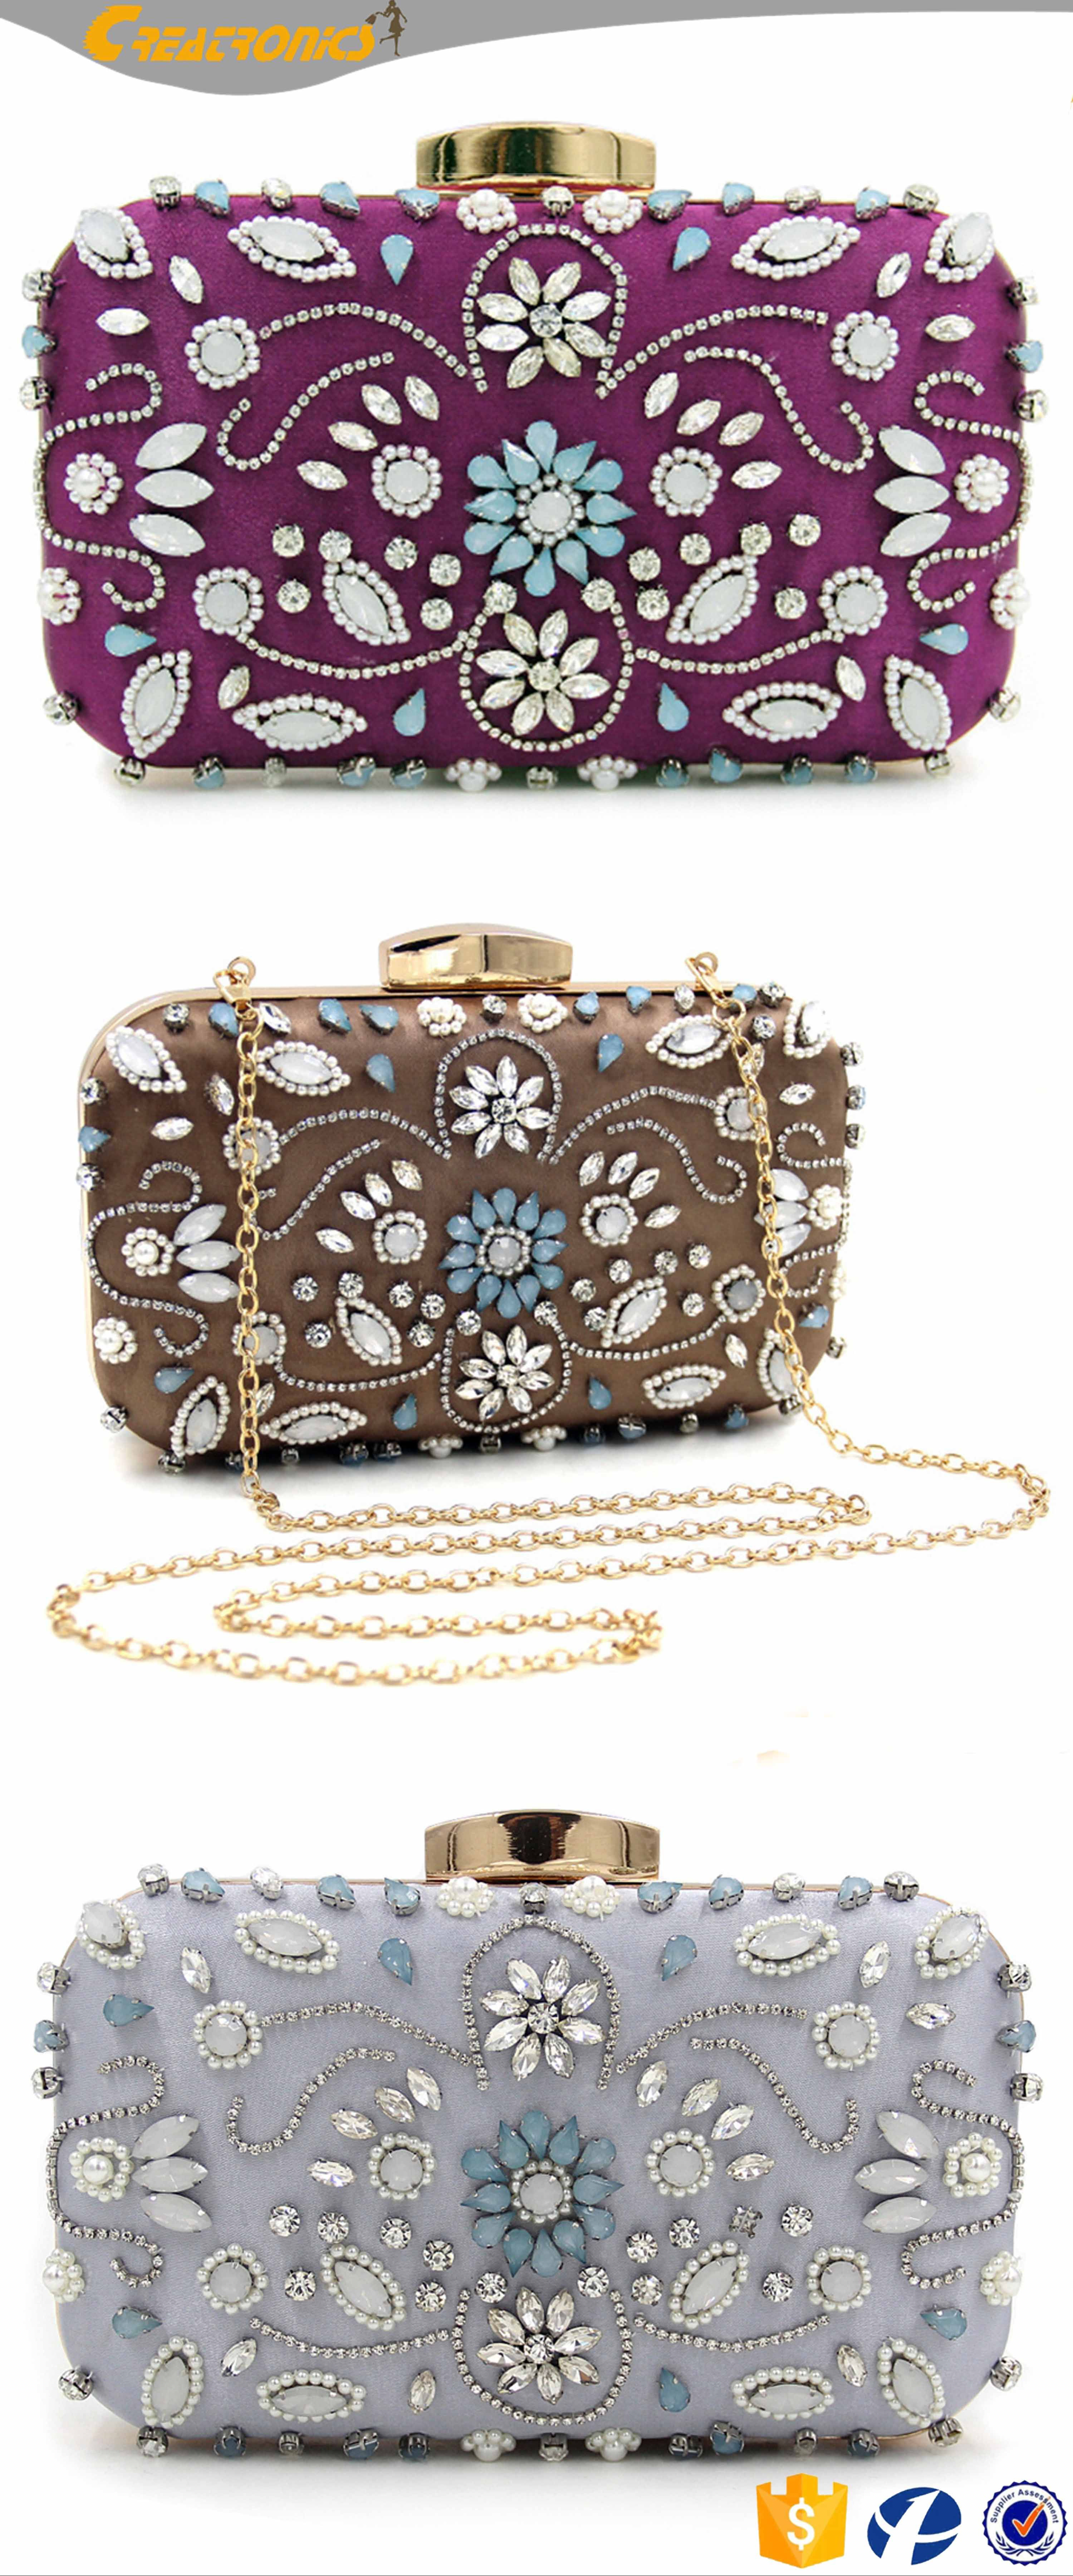 66cc5ad8e575 Elegent luxury clutch bag lady party ladies hand. It s an amazing  combination for your office look  creatronicsfashion .